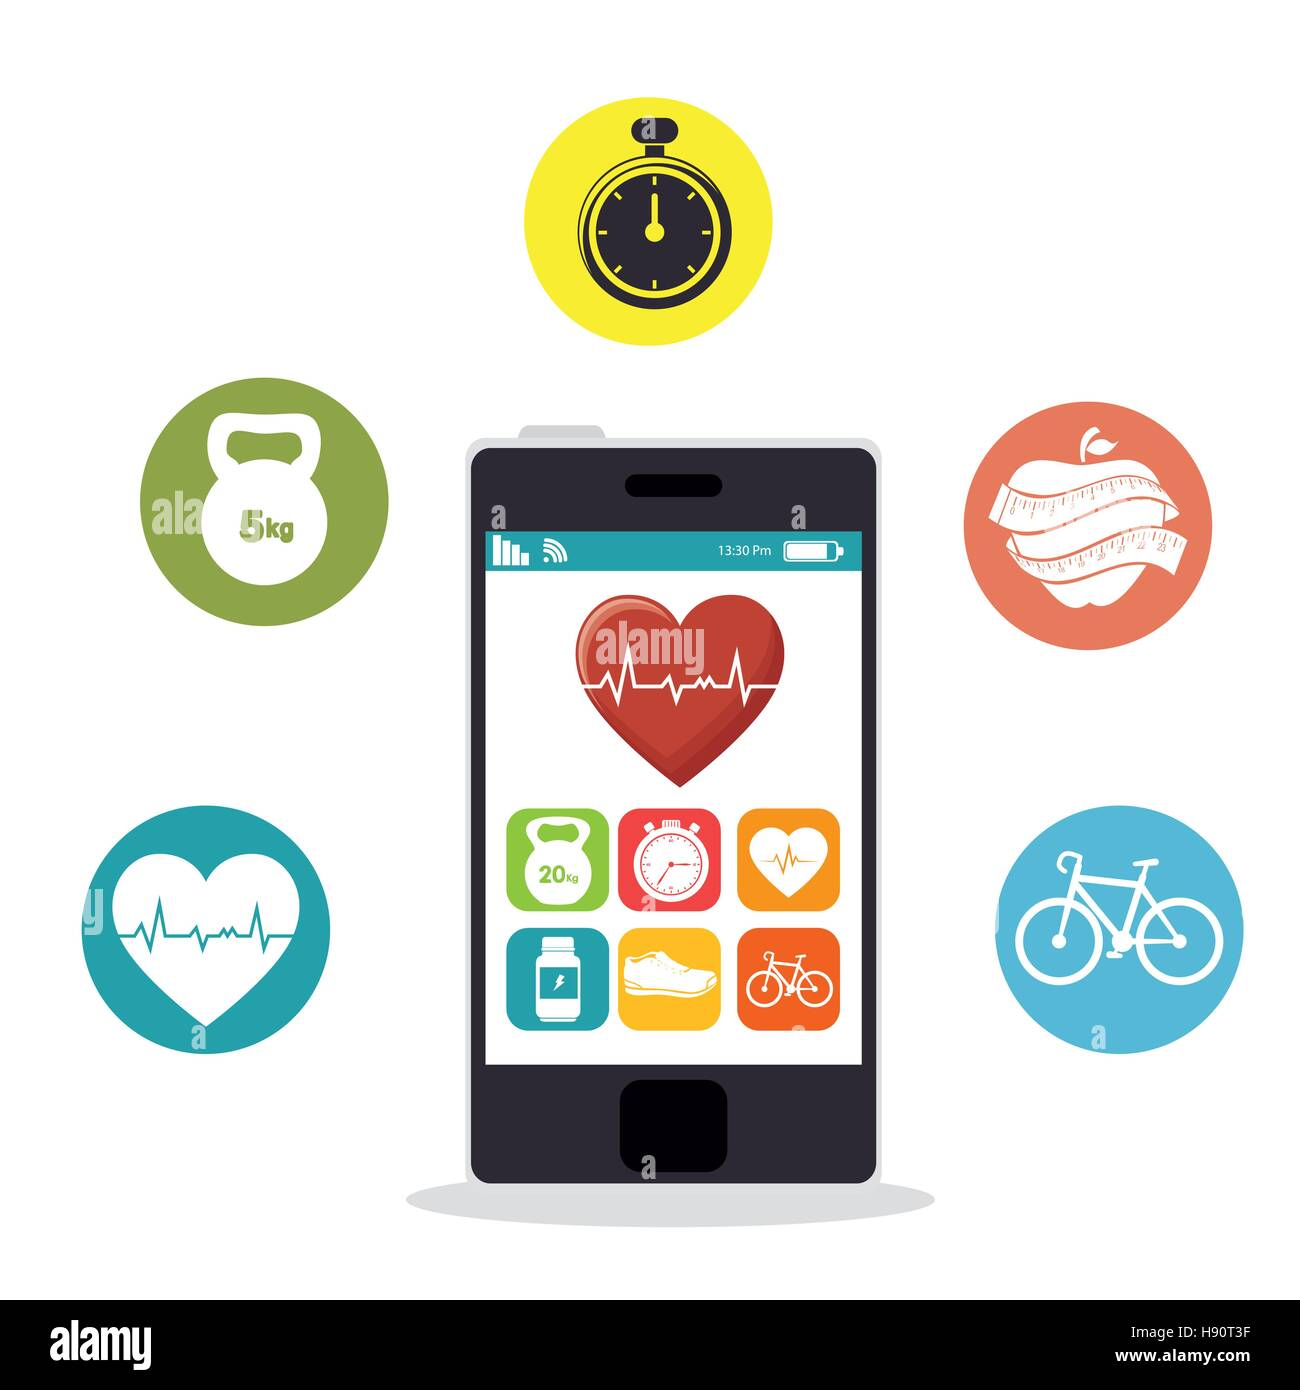 smartphone heart rate app fitness health vector illustration eps 10 - Stock Image